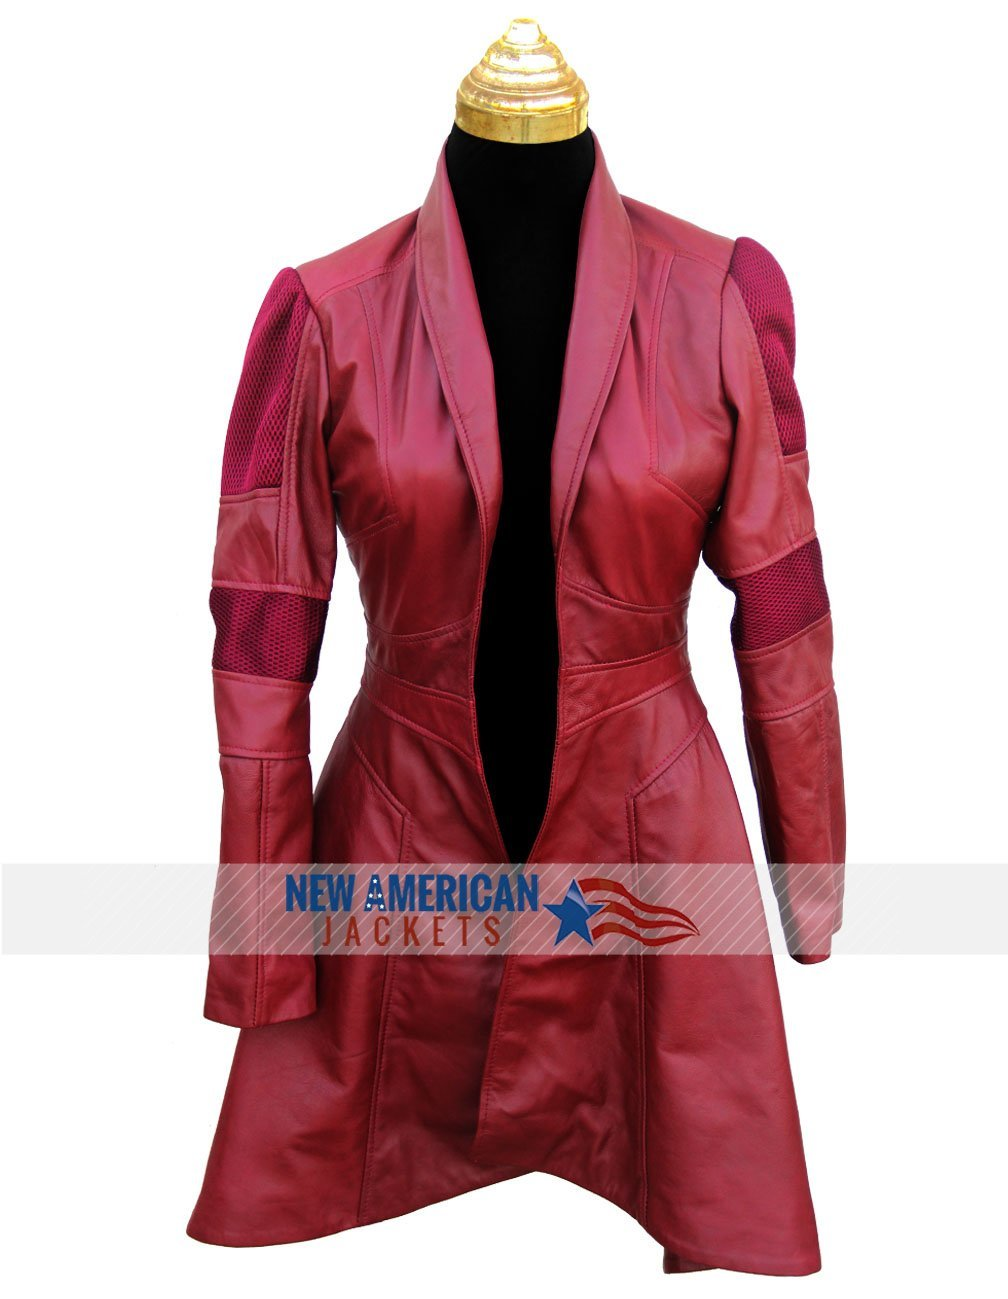 Red Civil War Scarlet Witch Coat - New American jackets